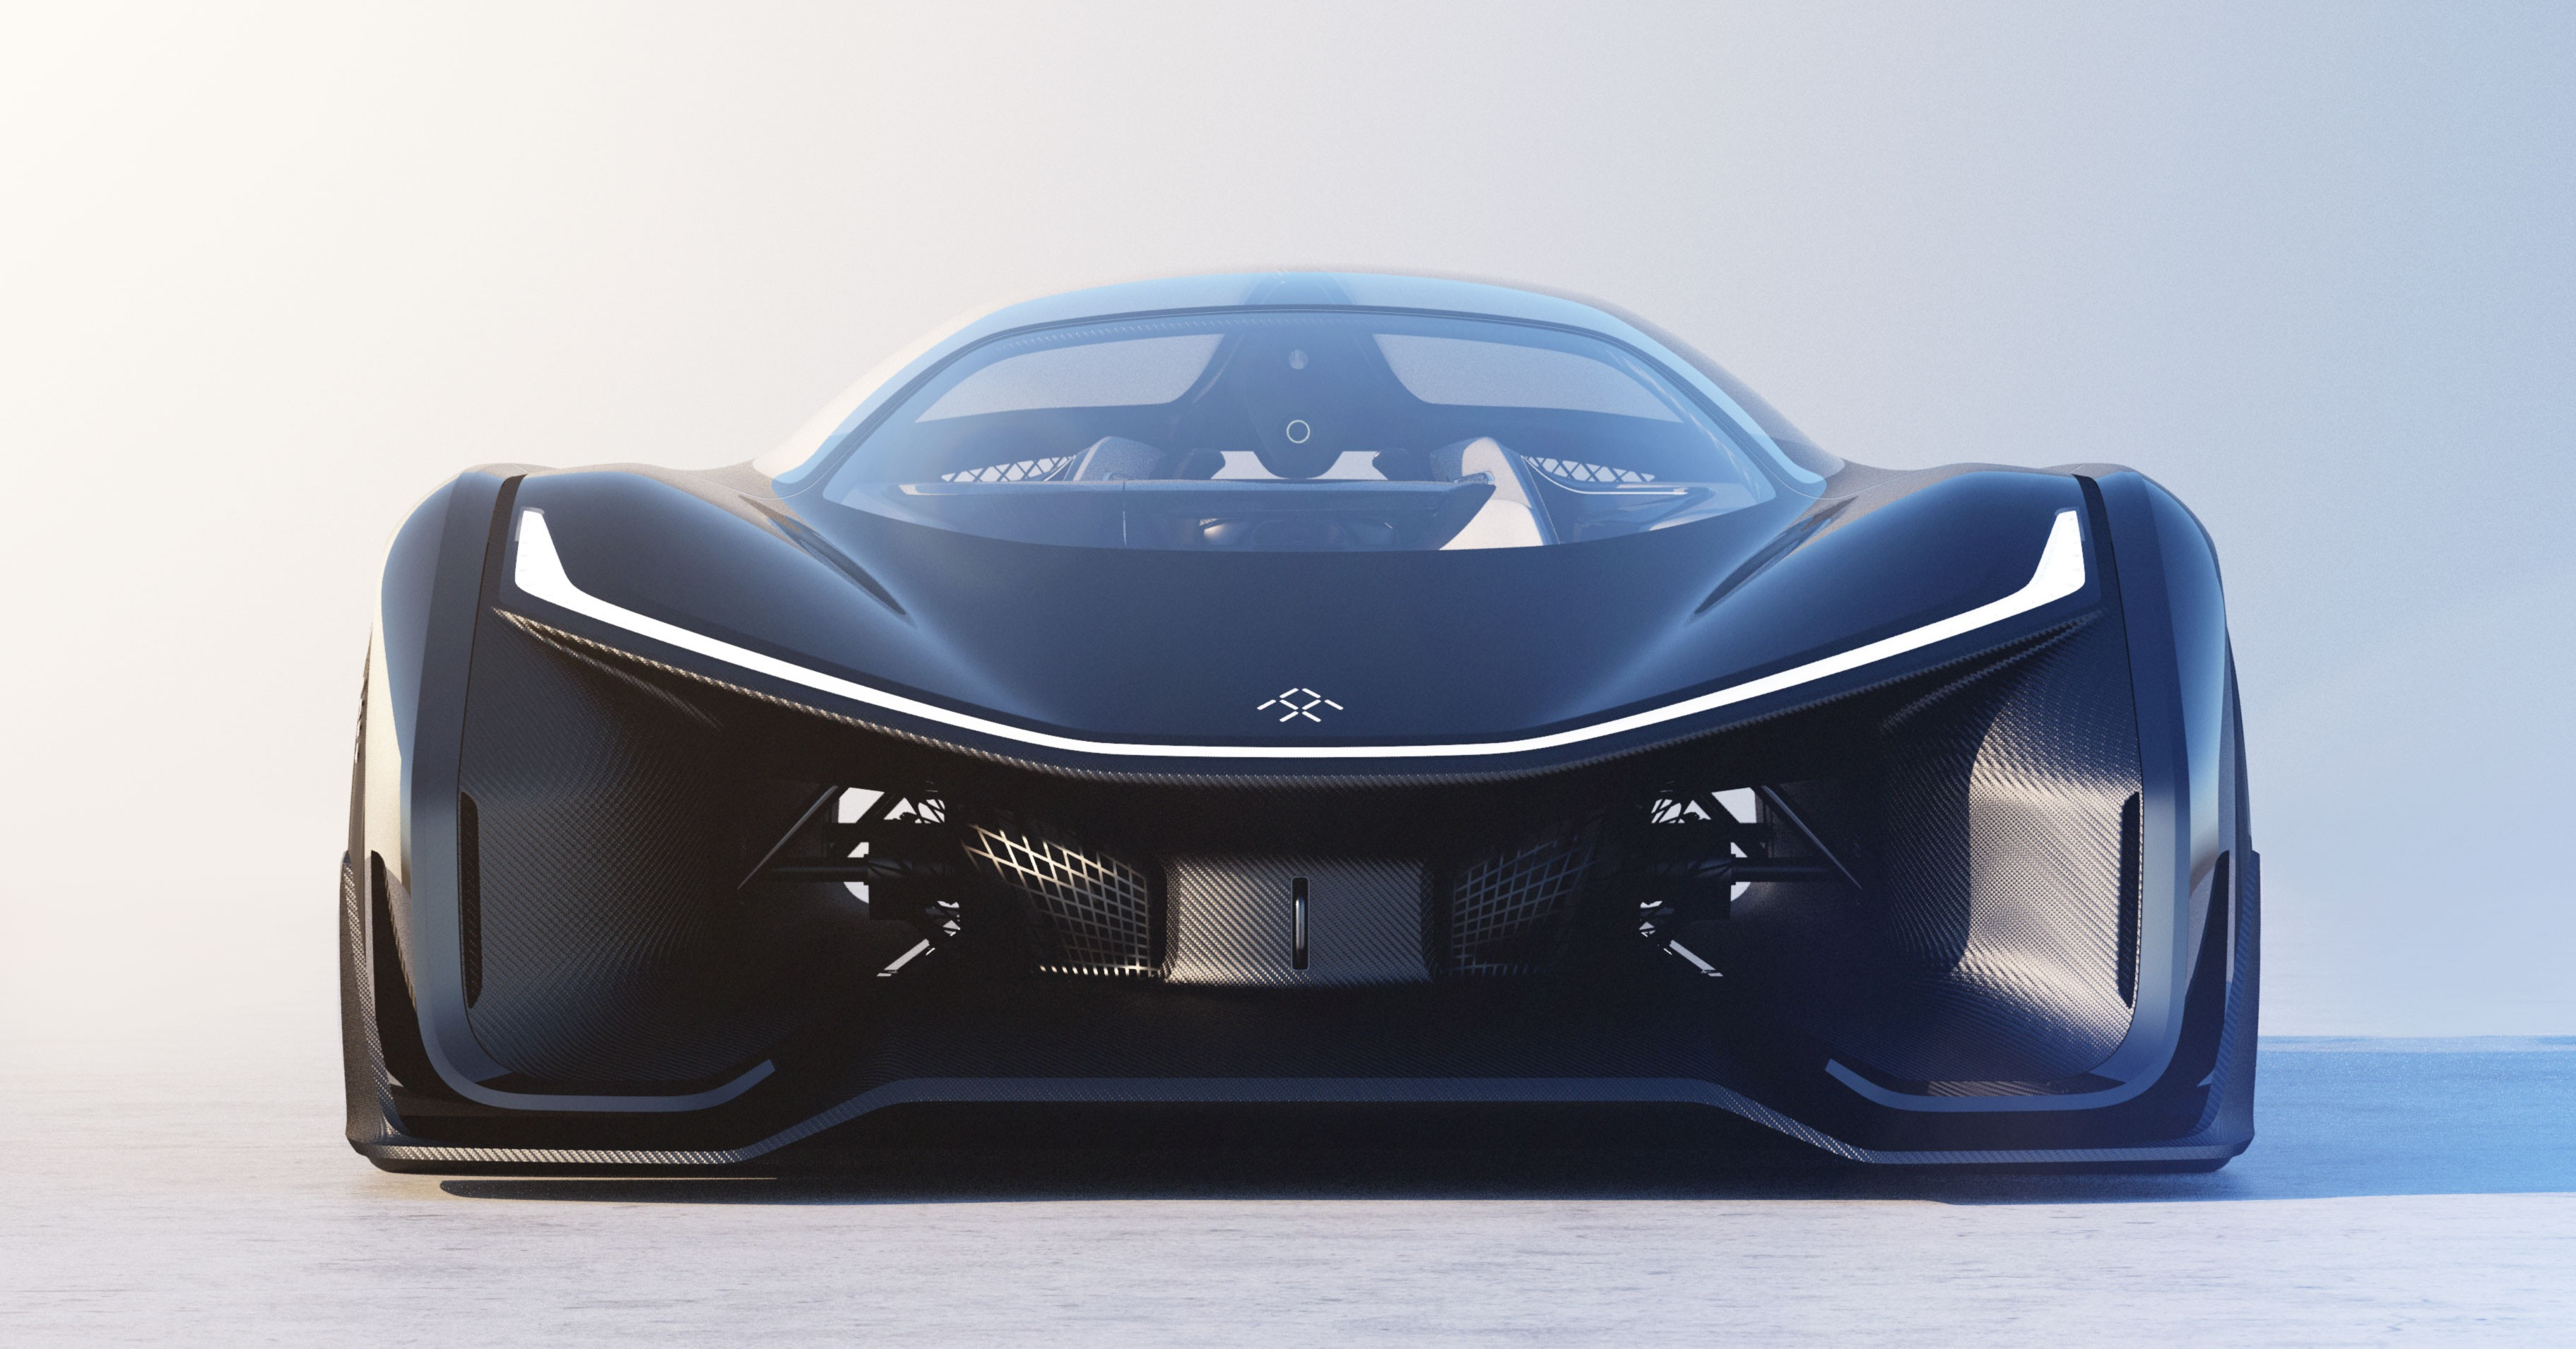 Wallpaper Faraday Future Electric Car Best Electric